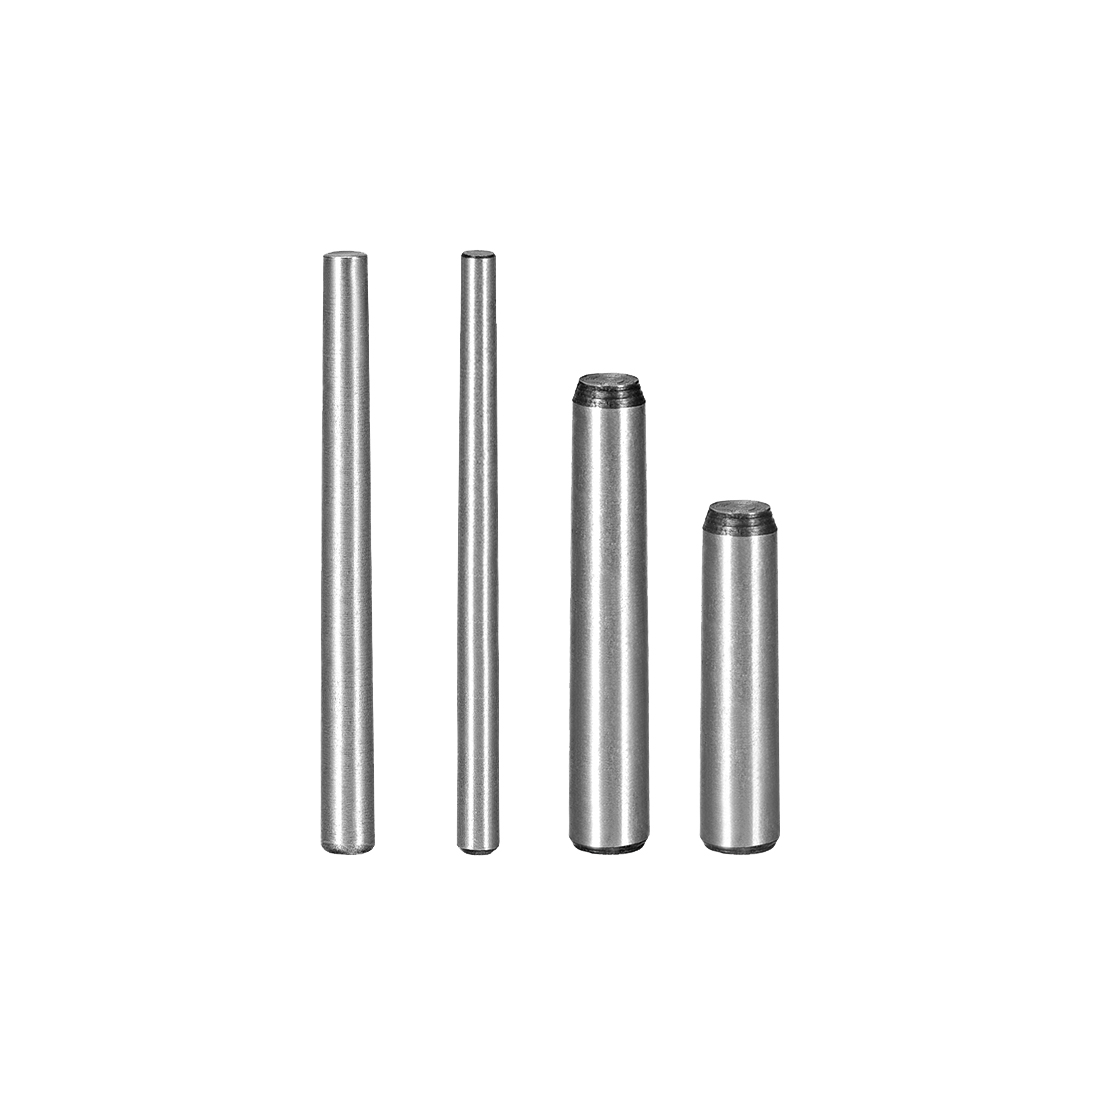 Uxcell 20Pcs 45# Carbon Steel GB117 40/45/50/55/60mm Length 3mm 4mm Small End Diameter 1:50 Taper Pin Fasteners